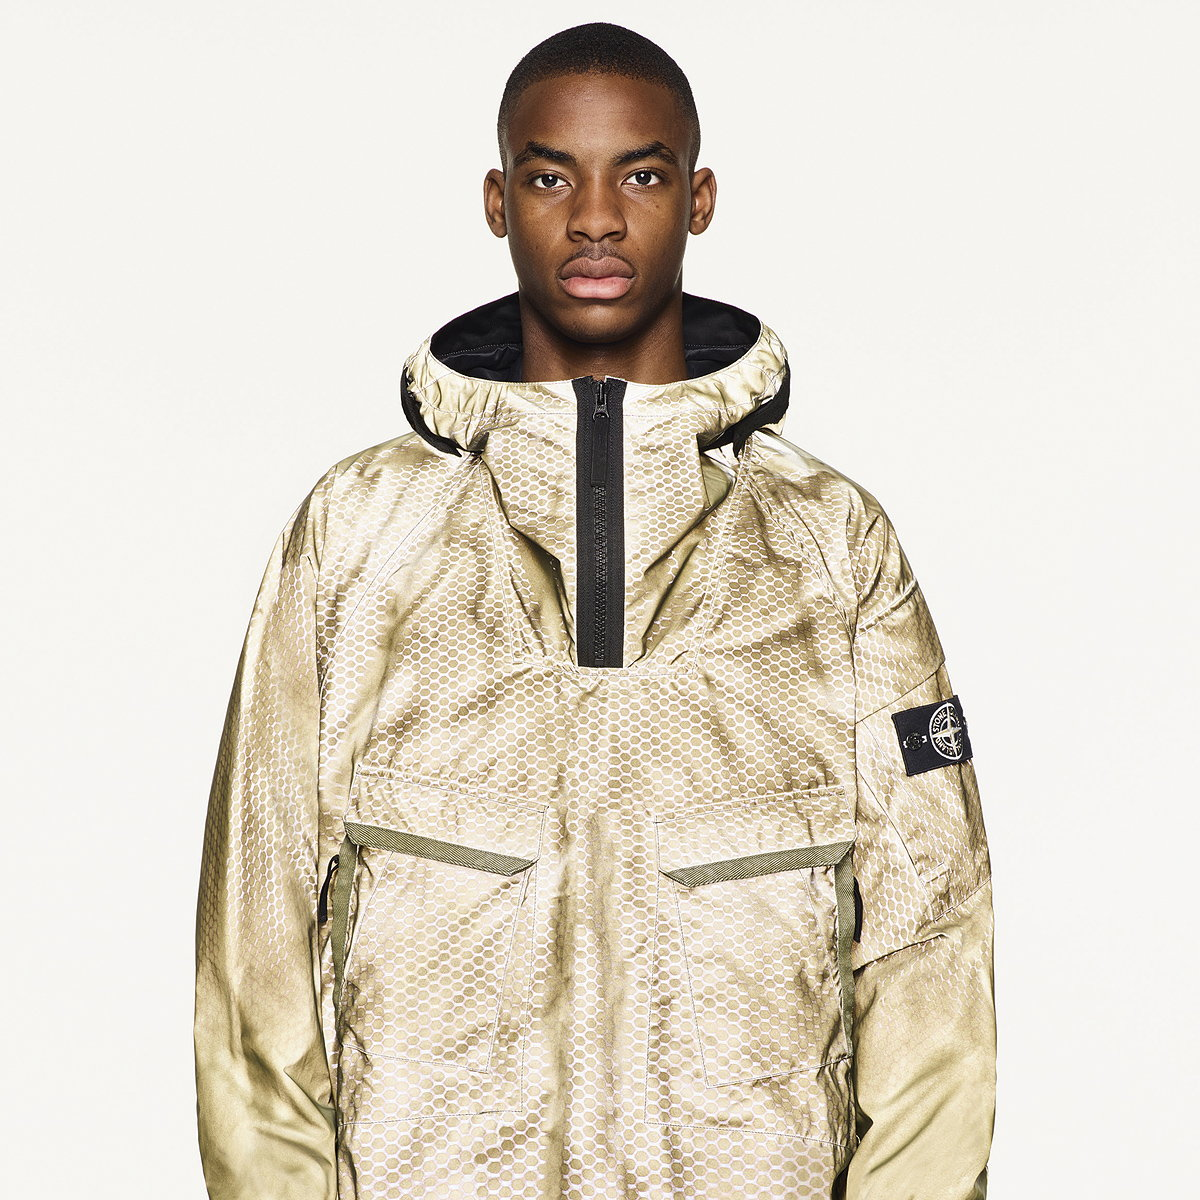 Stone Island Prototype Research - Series 01